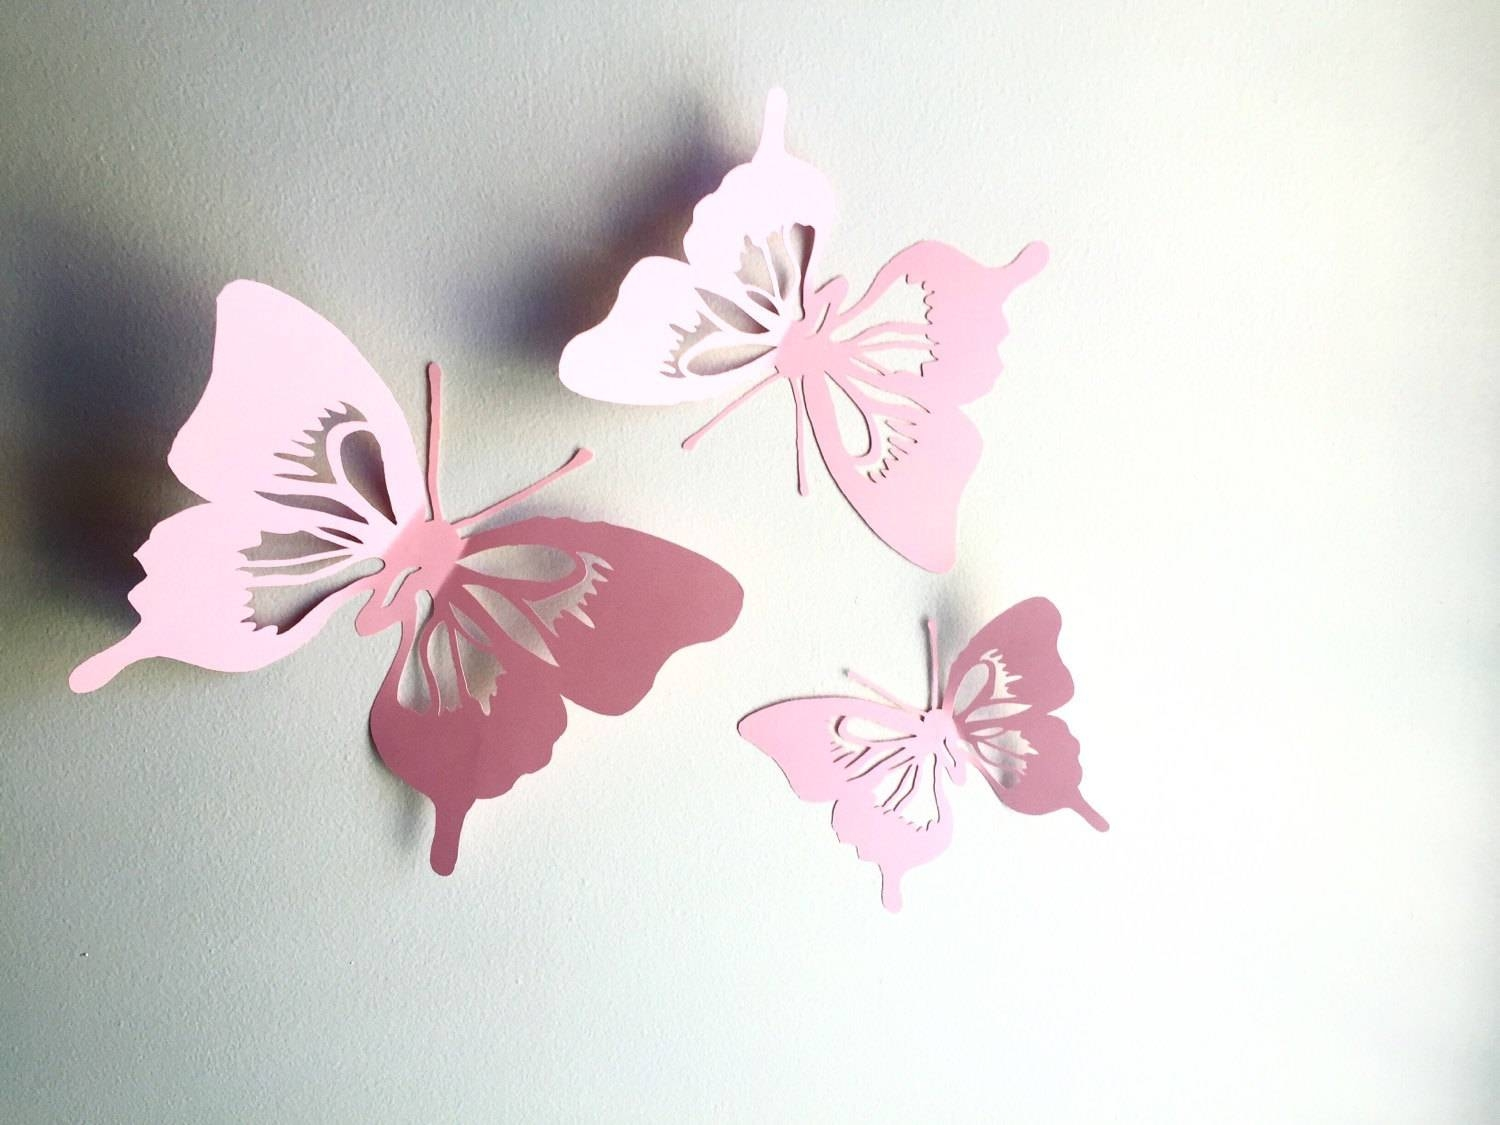 3D Paper Butterfly Wall Art Paper Wall Cut Out Butterfly With Most Popular Butterflies 3D Wall Art (View 8 of 20)